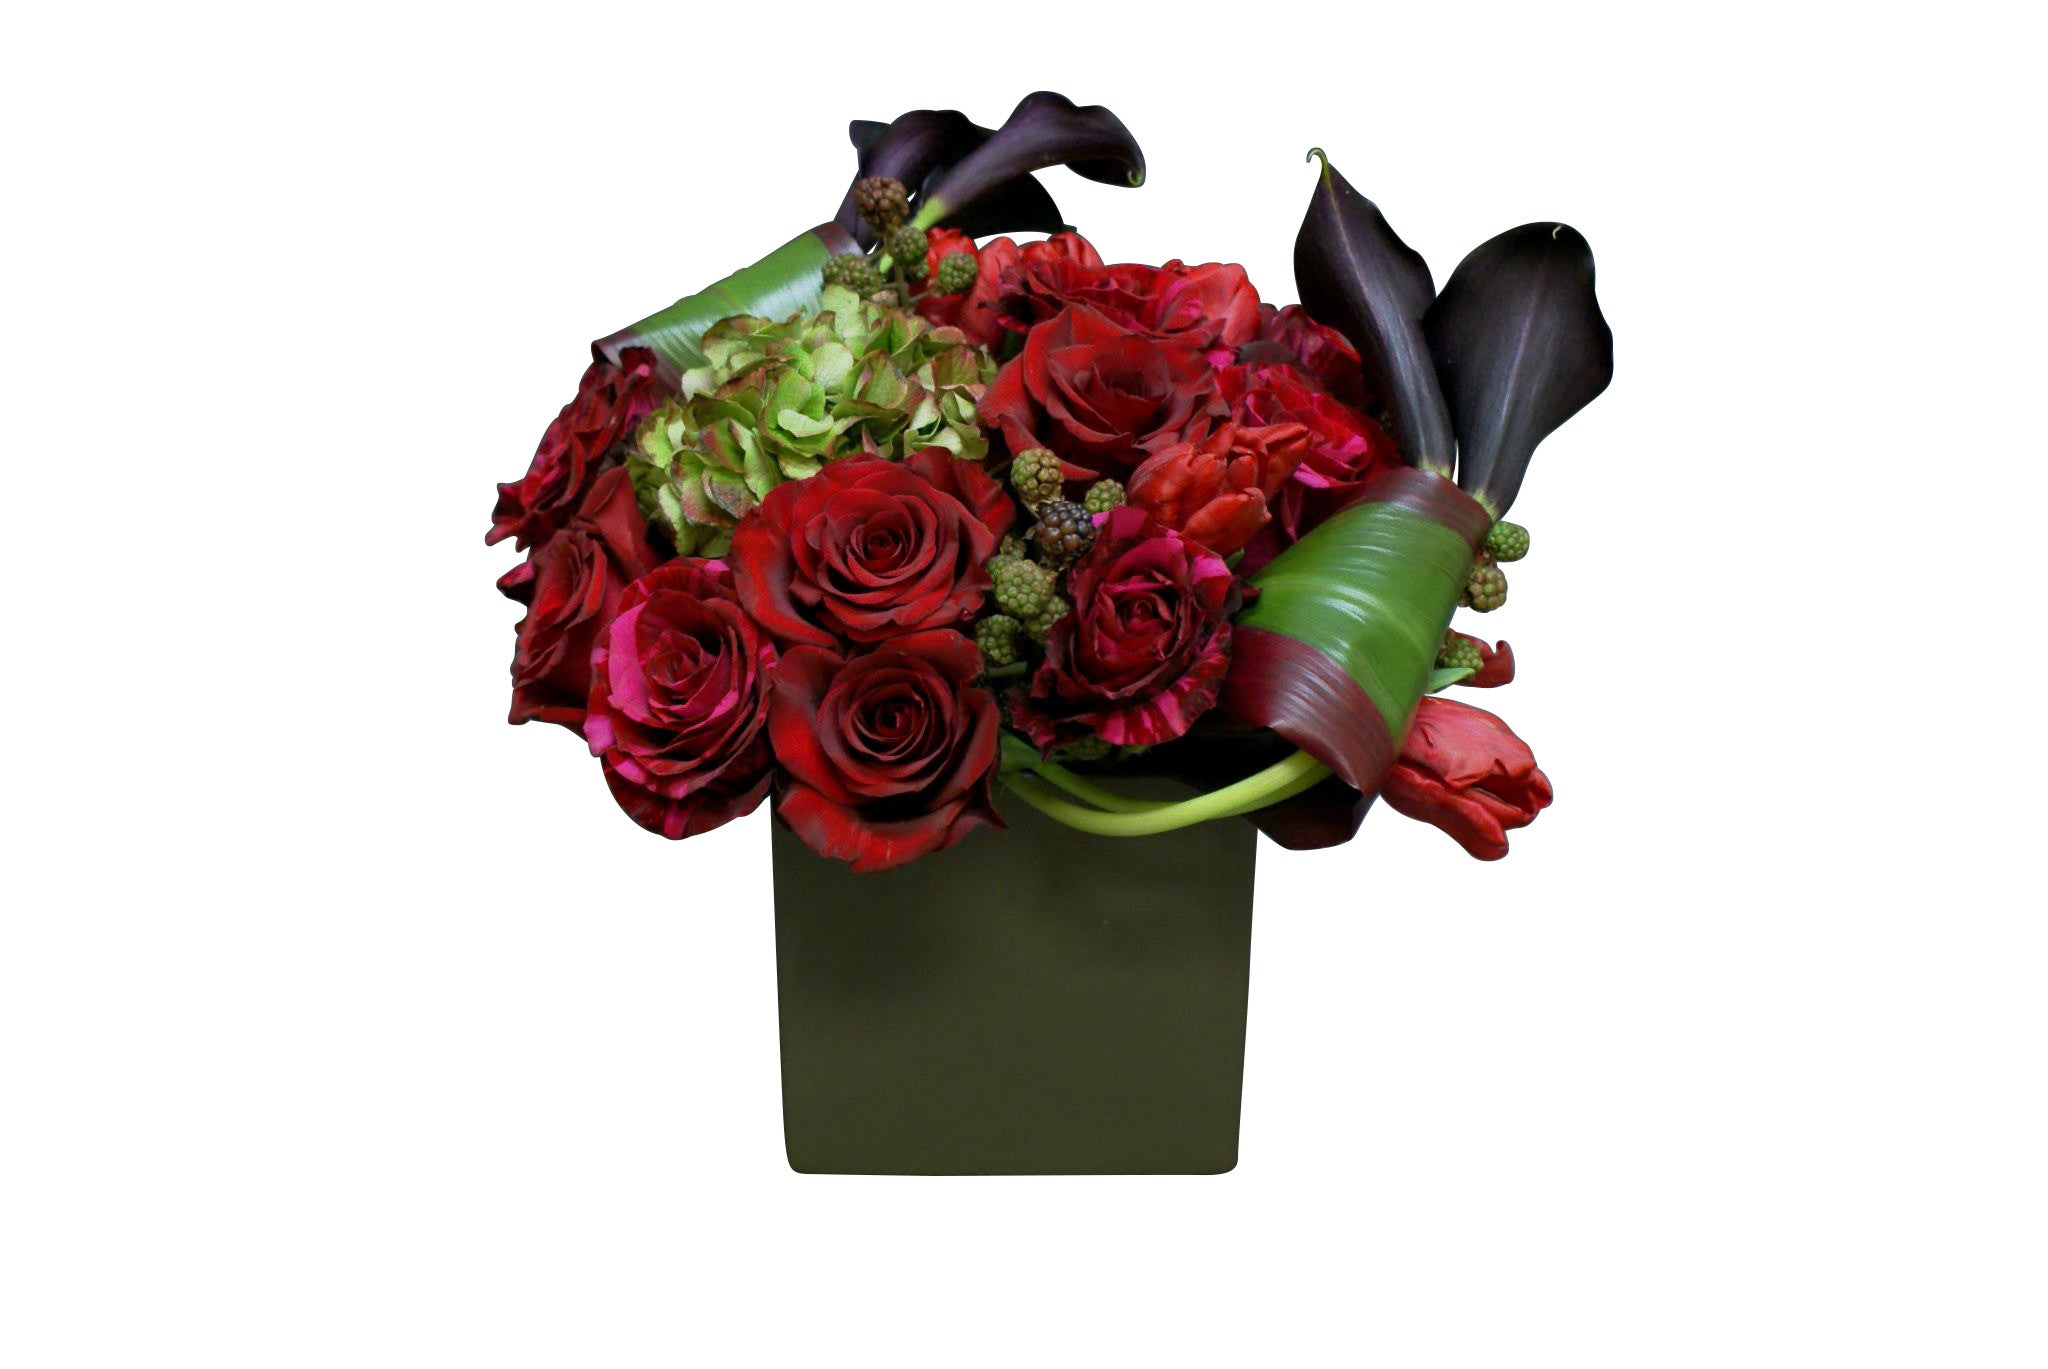 Stylish Red Valentine Flower Anissa Rae Flowers Ny Office